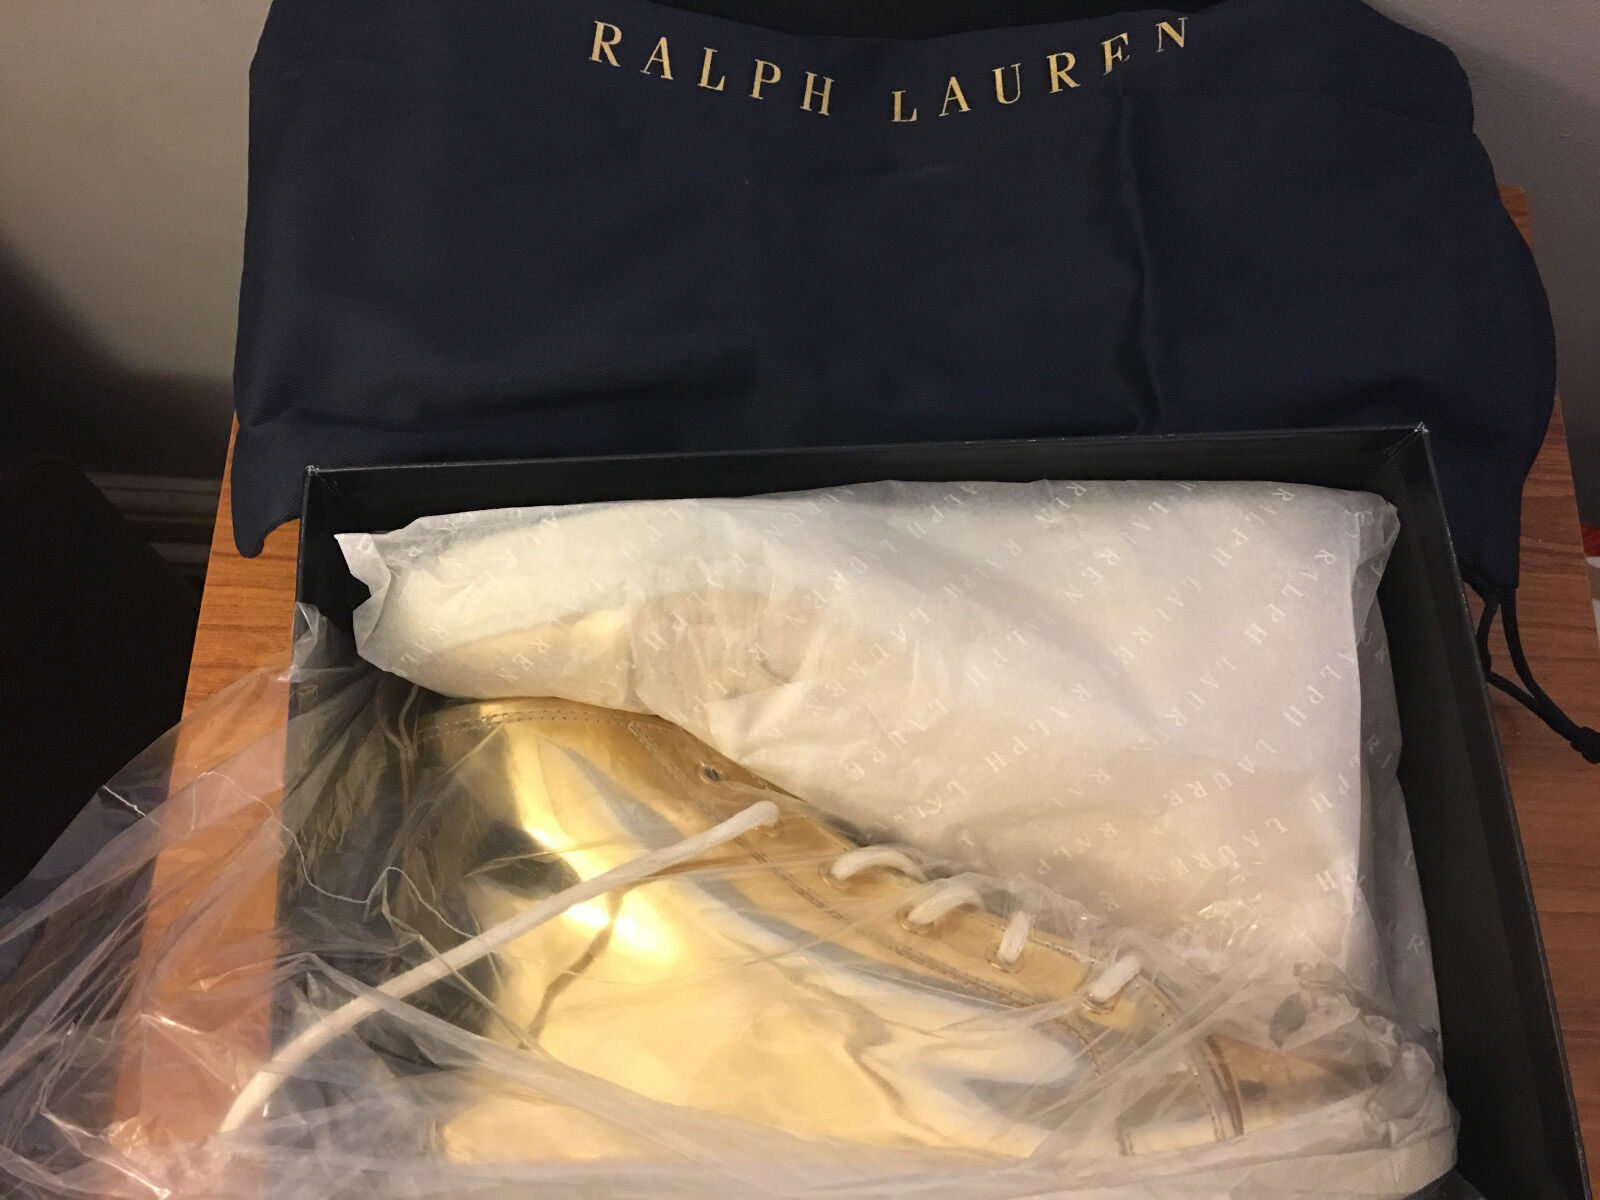 RALPH LAUREN SILVANA Gold  LEATHER UNISEX Turnschuhe UK 6,  480